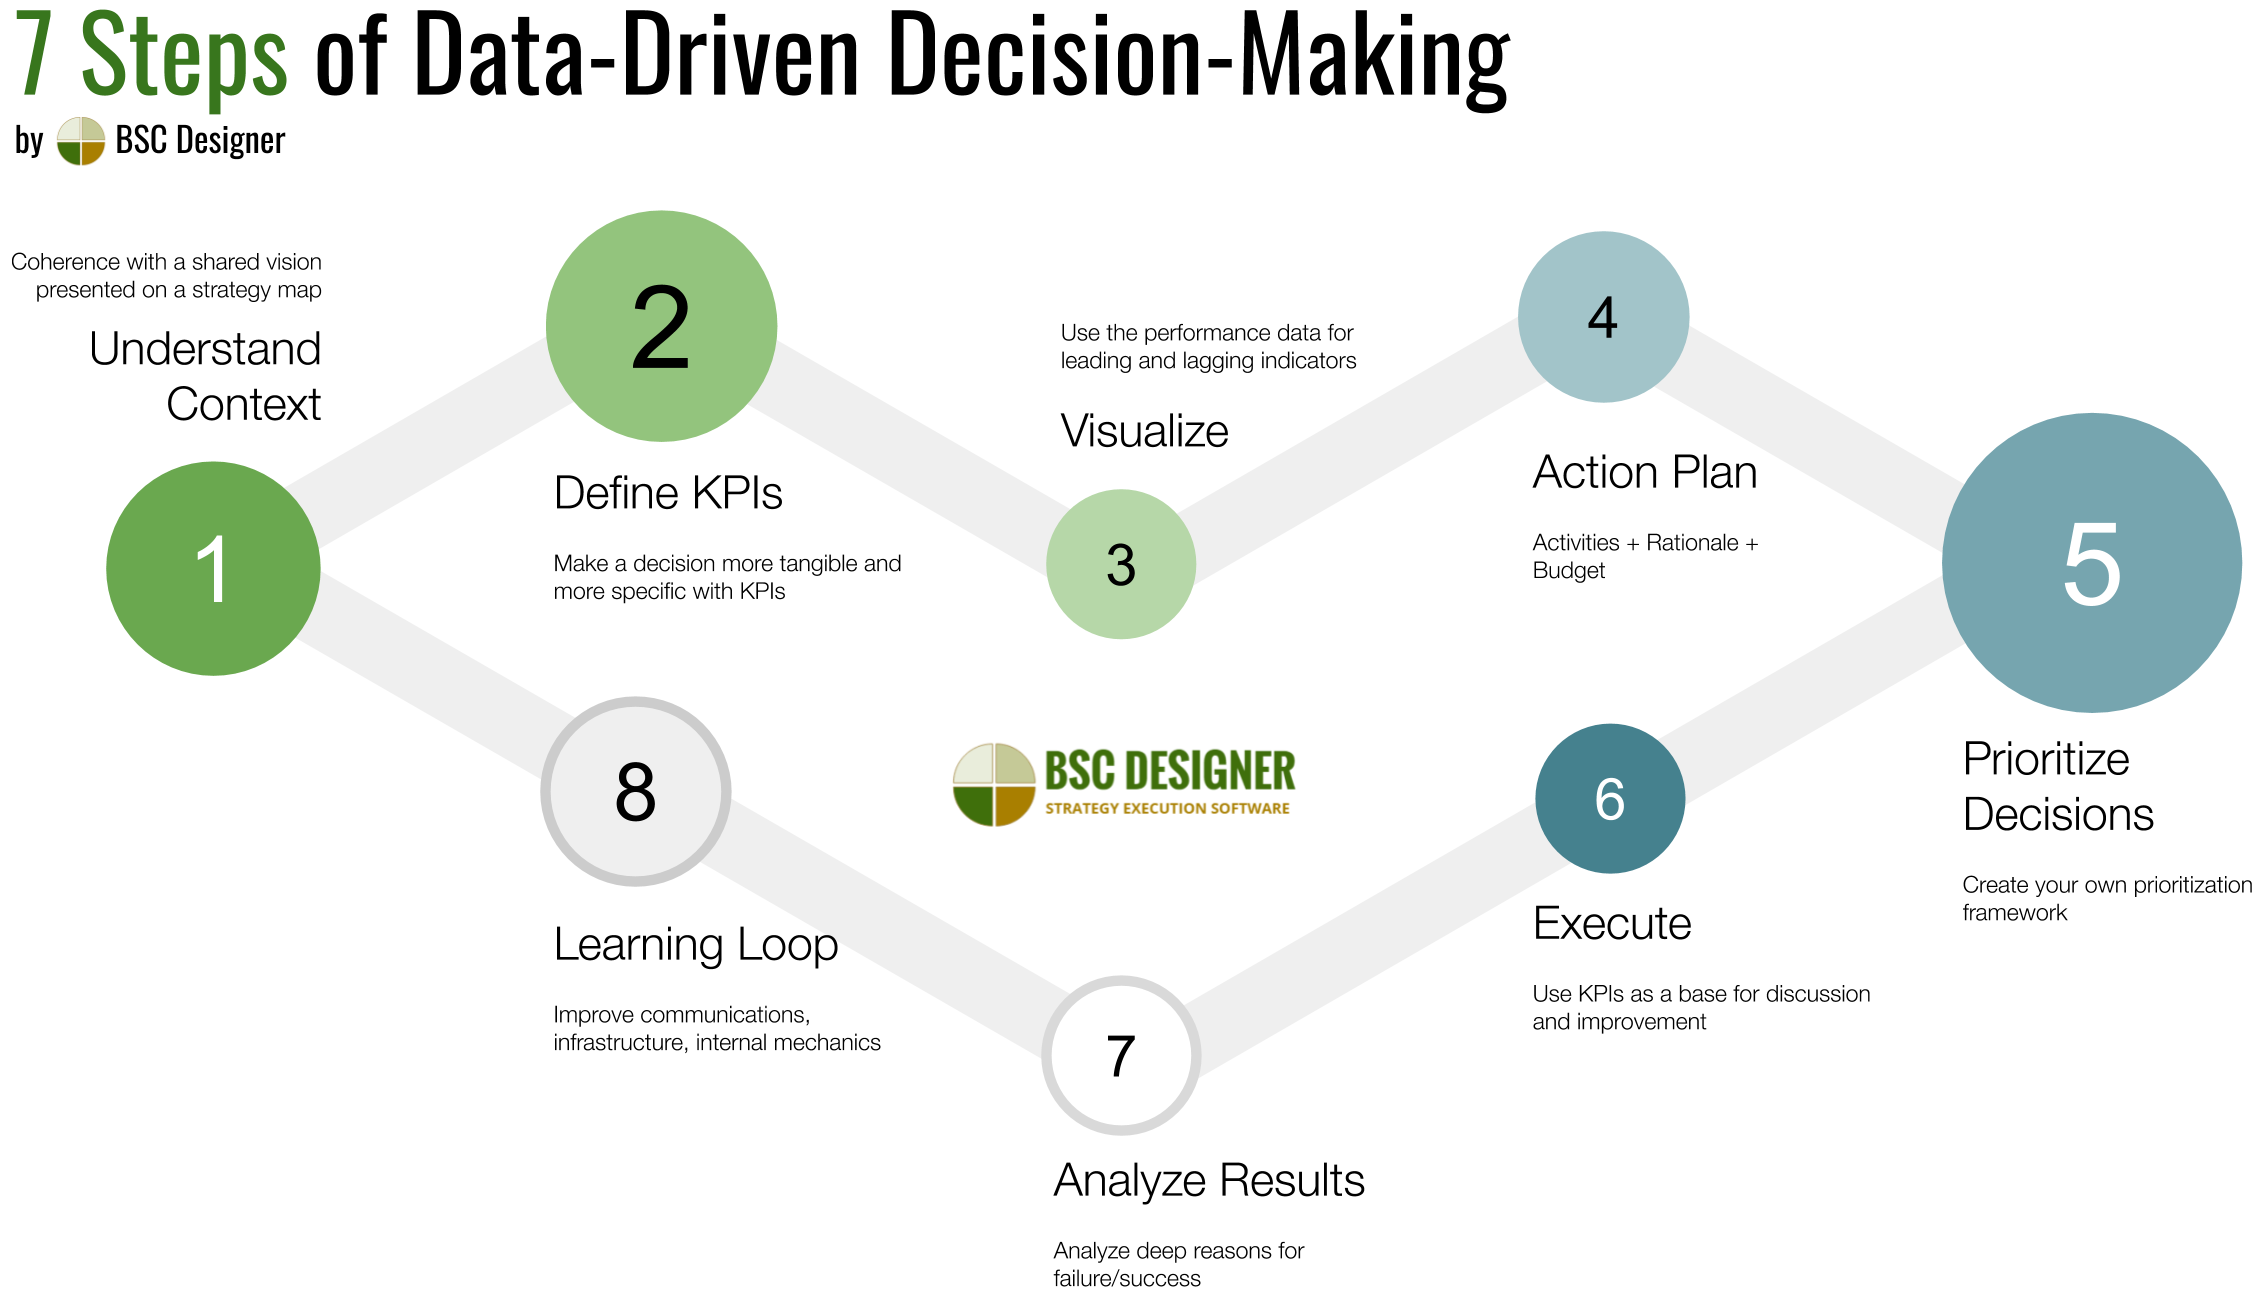 7 Steps of Data-Driven Decision